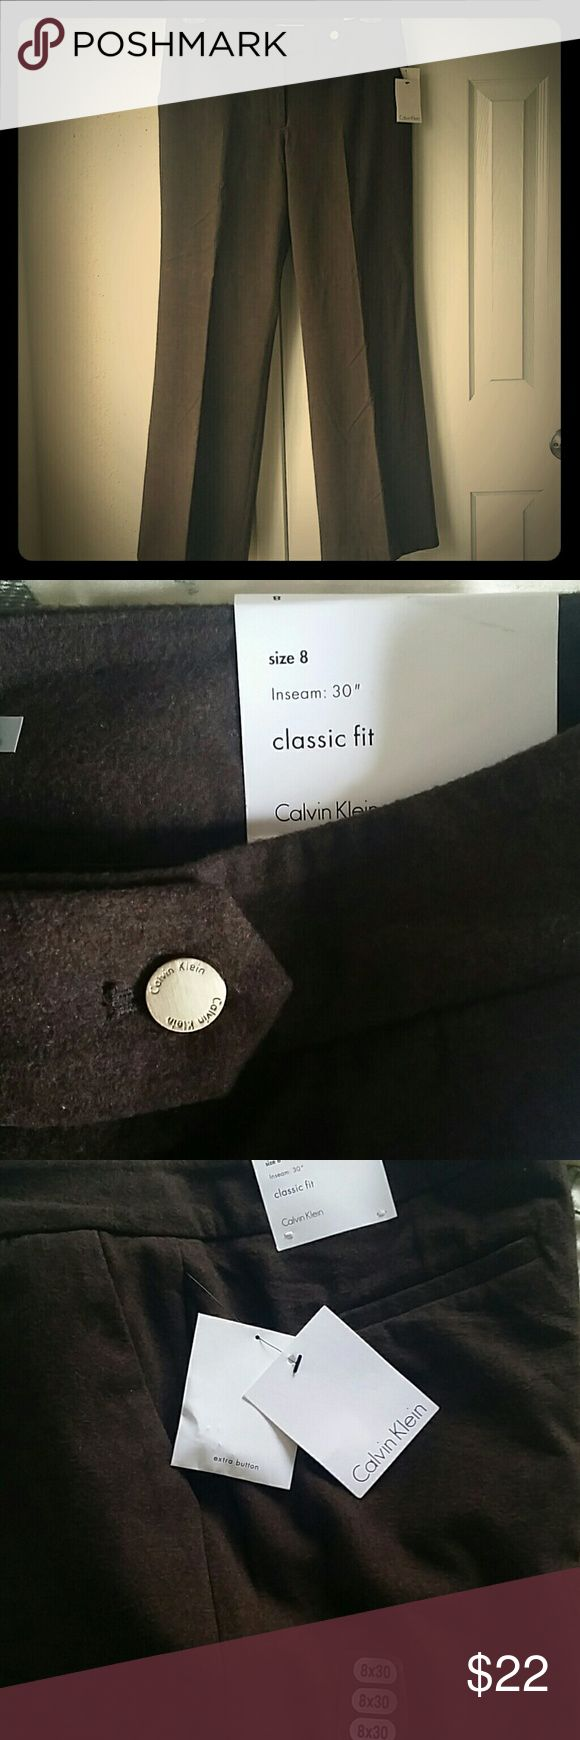 """Calvin Klein Classic fit woman's Trousers Brown brushed wool feel to it. Never worn Calvin Klein Woman's Trousers. Size 8, 30""""inseam. Calvin Klein Pants"""